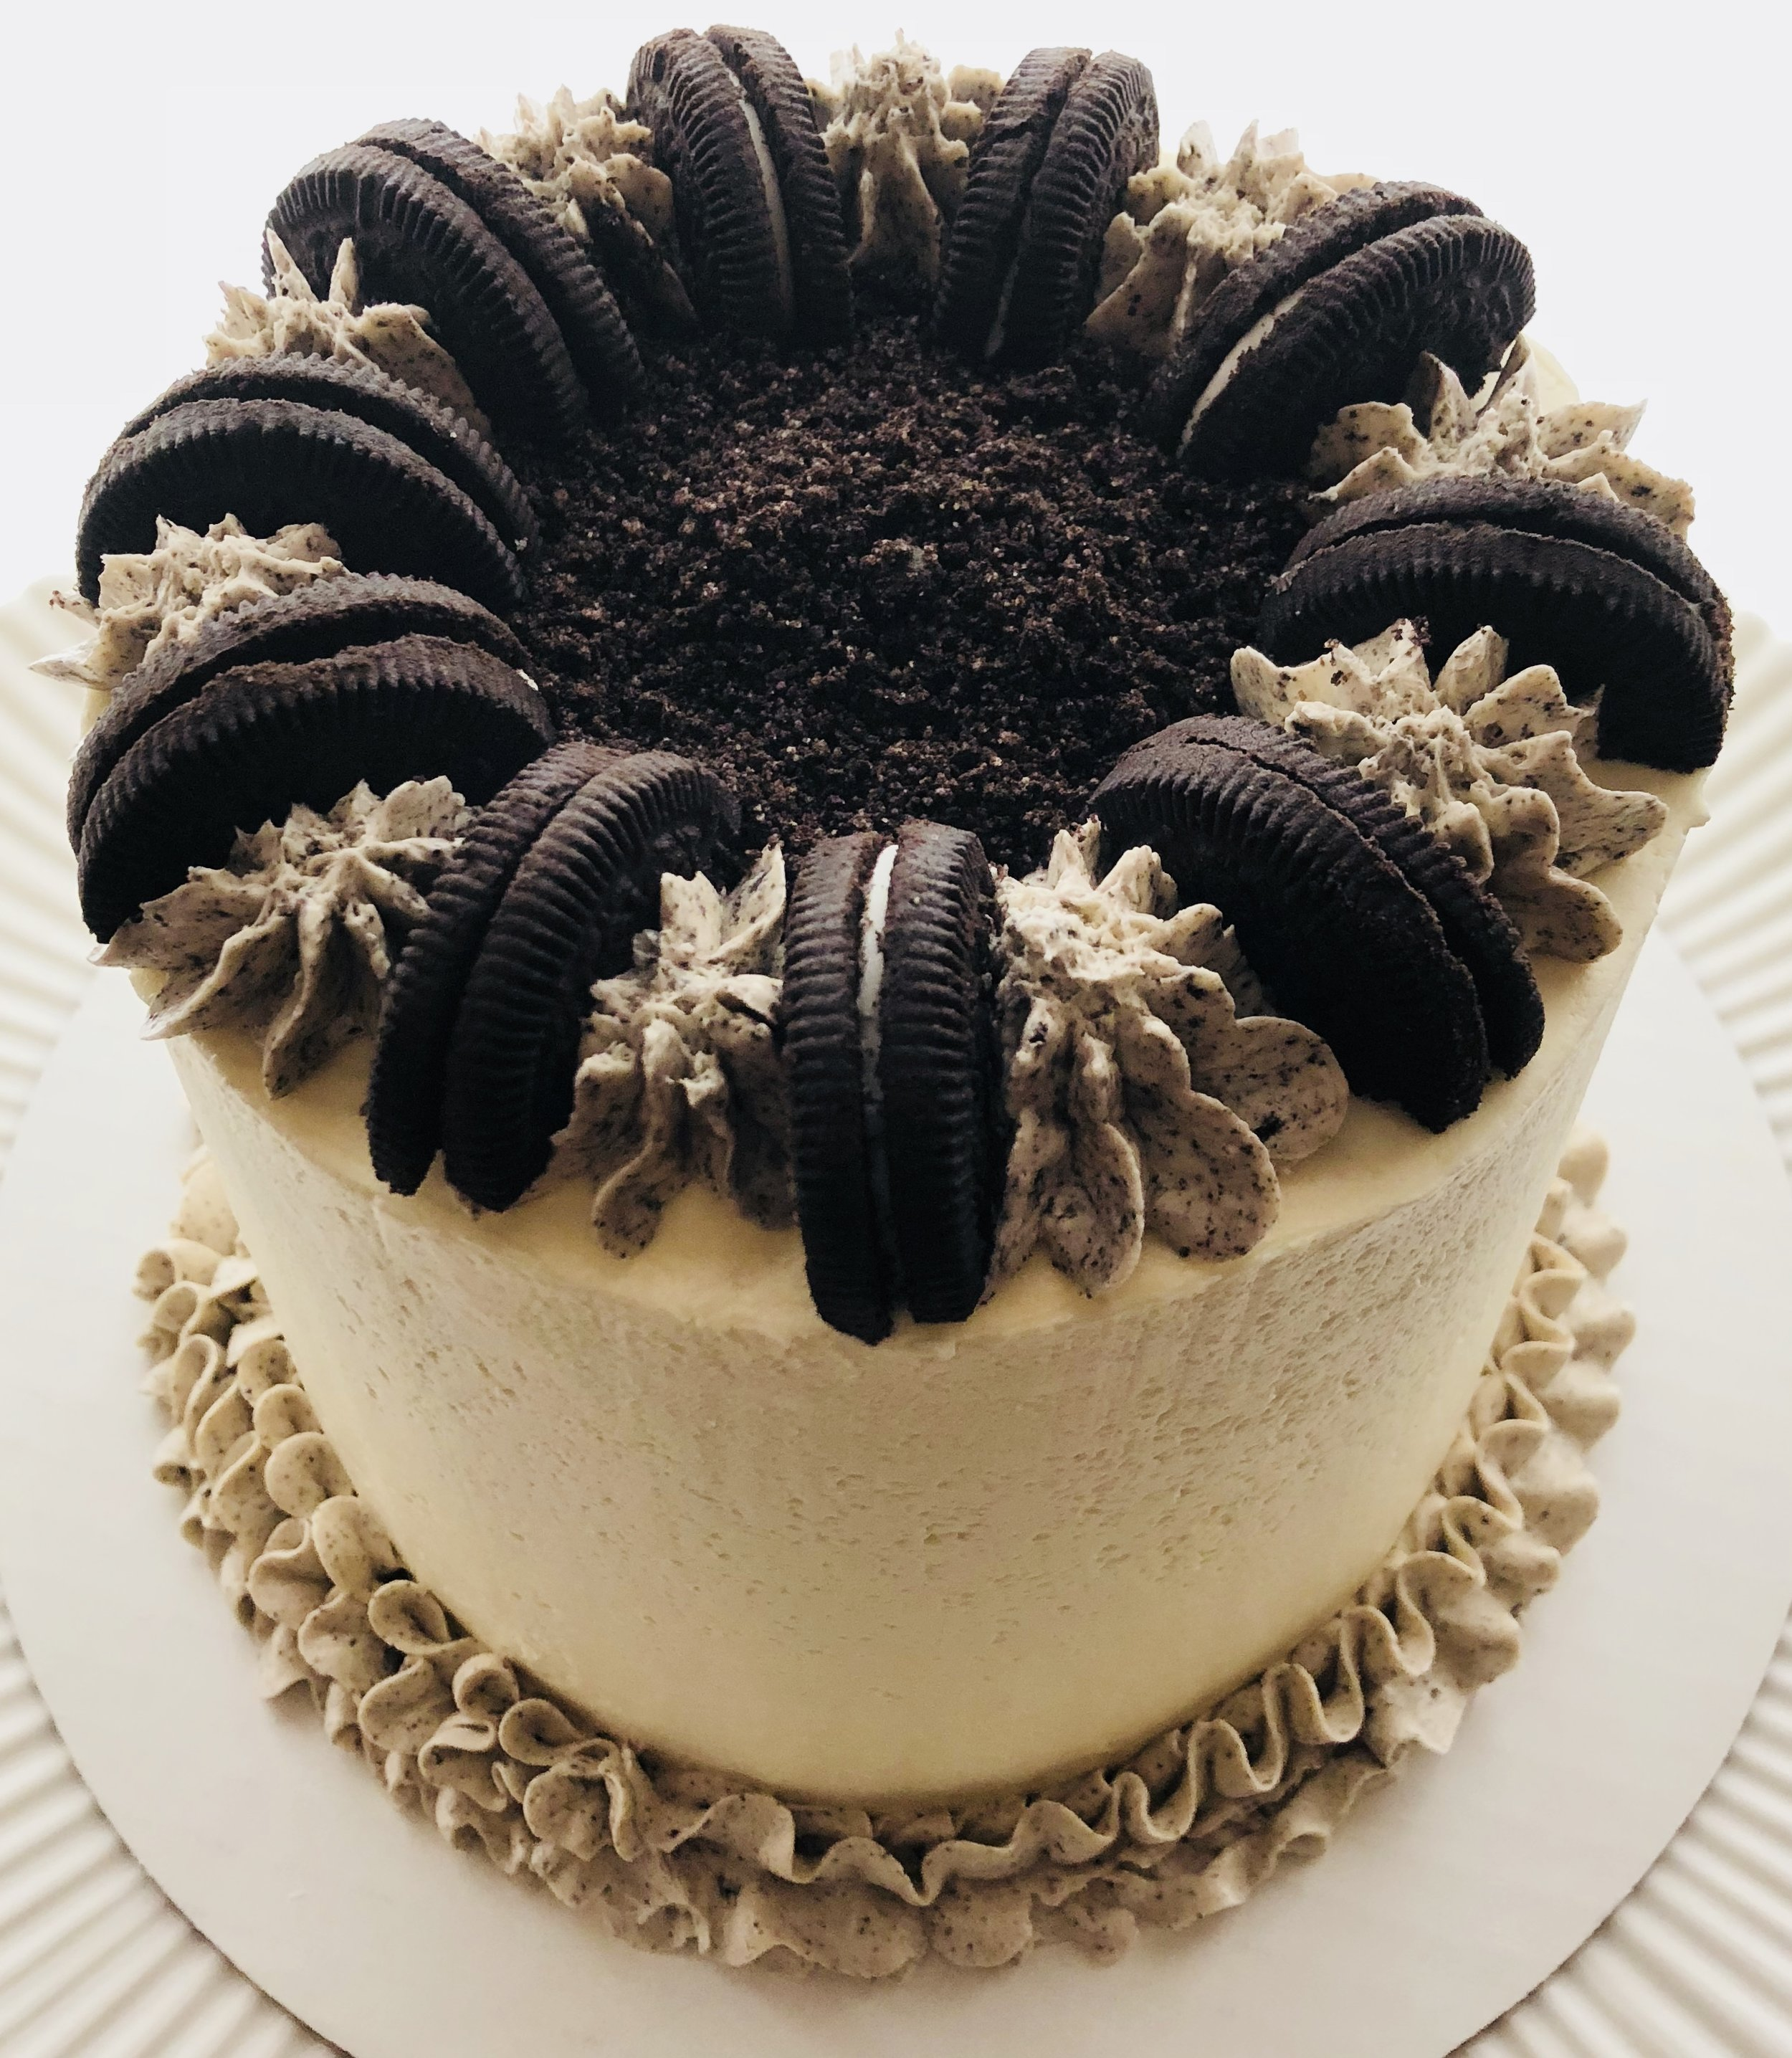 Cookies and Creme chocolate cake